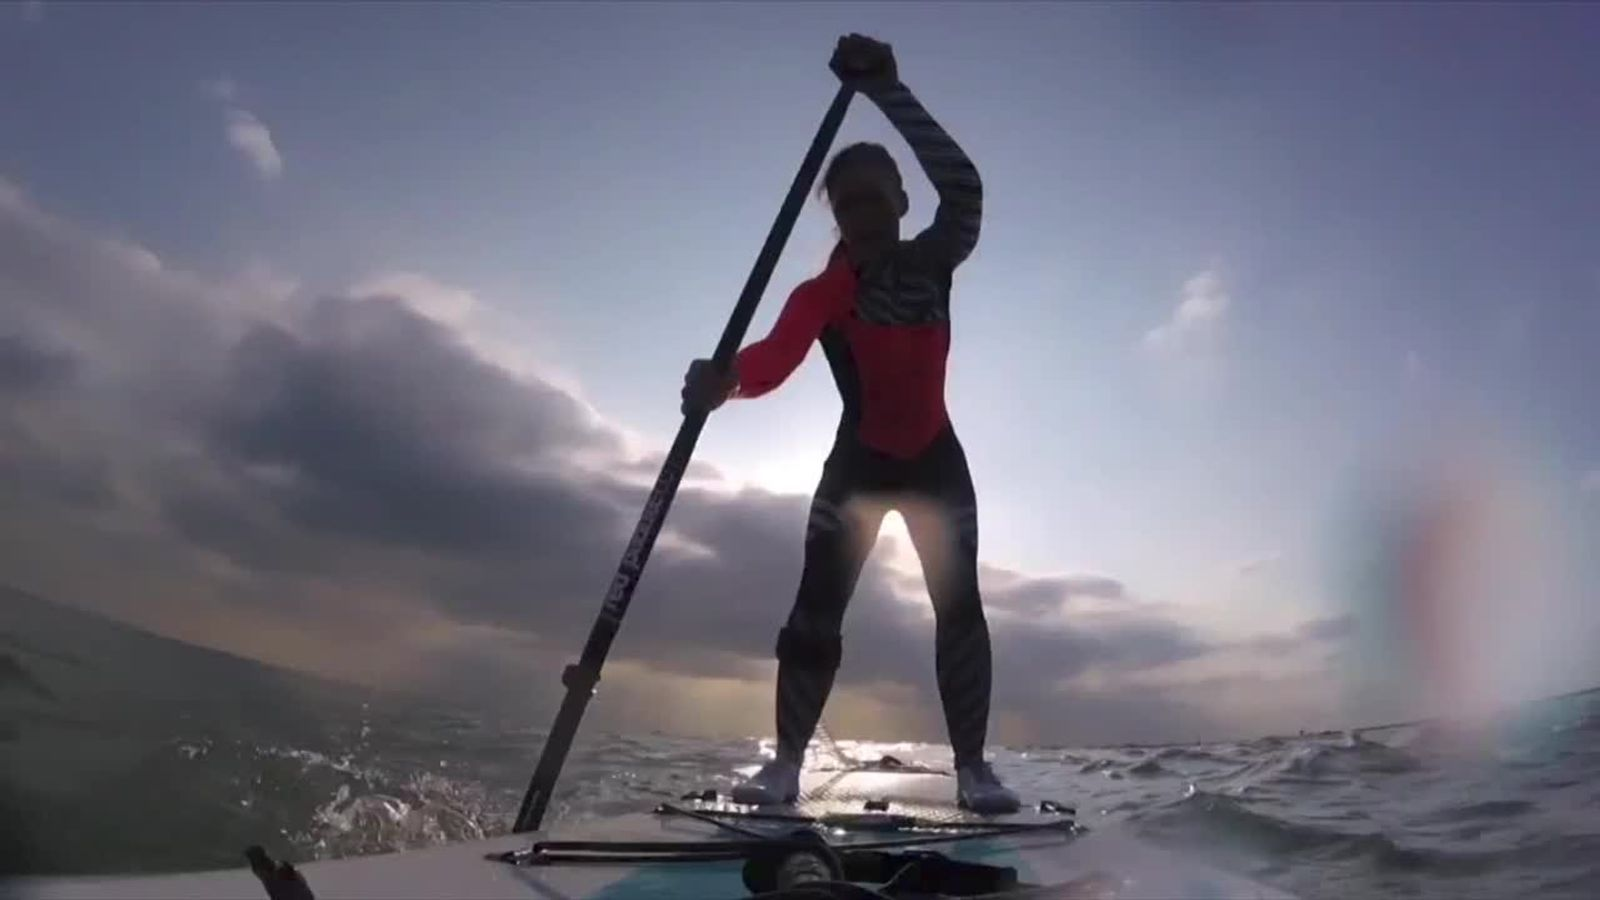 Lizzie Carr crosses The English Channel on a paddleboard and sets a new world record